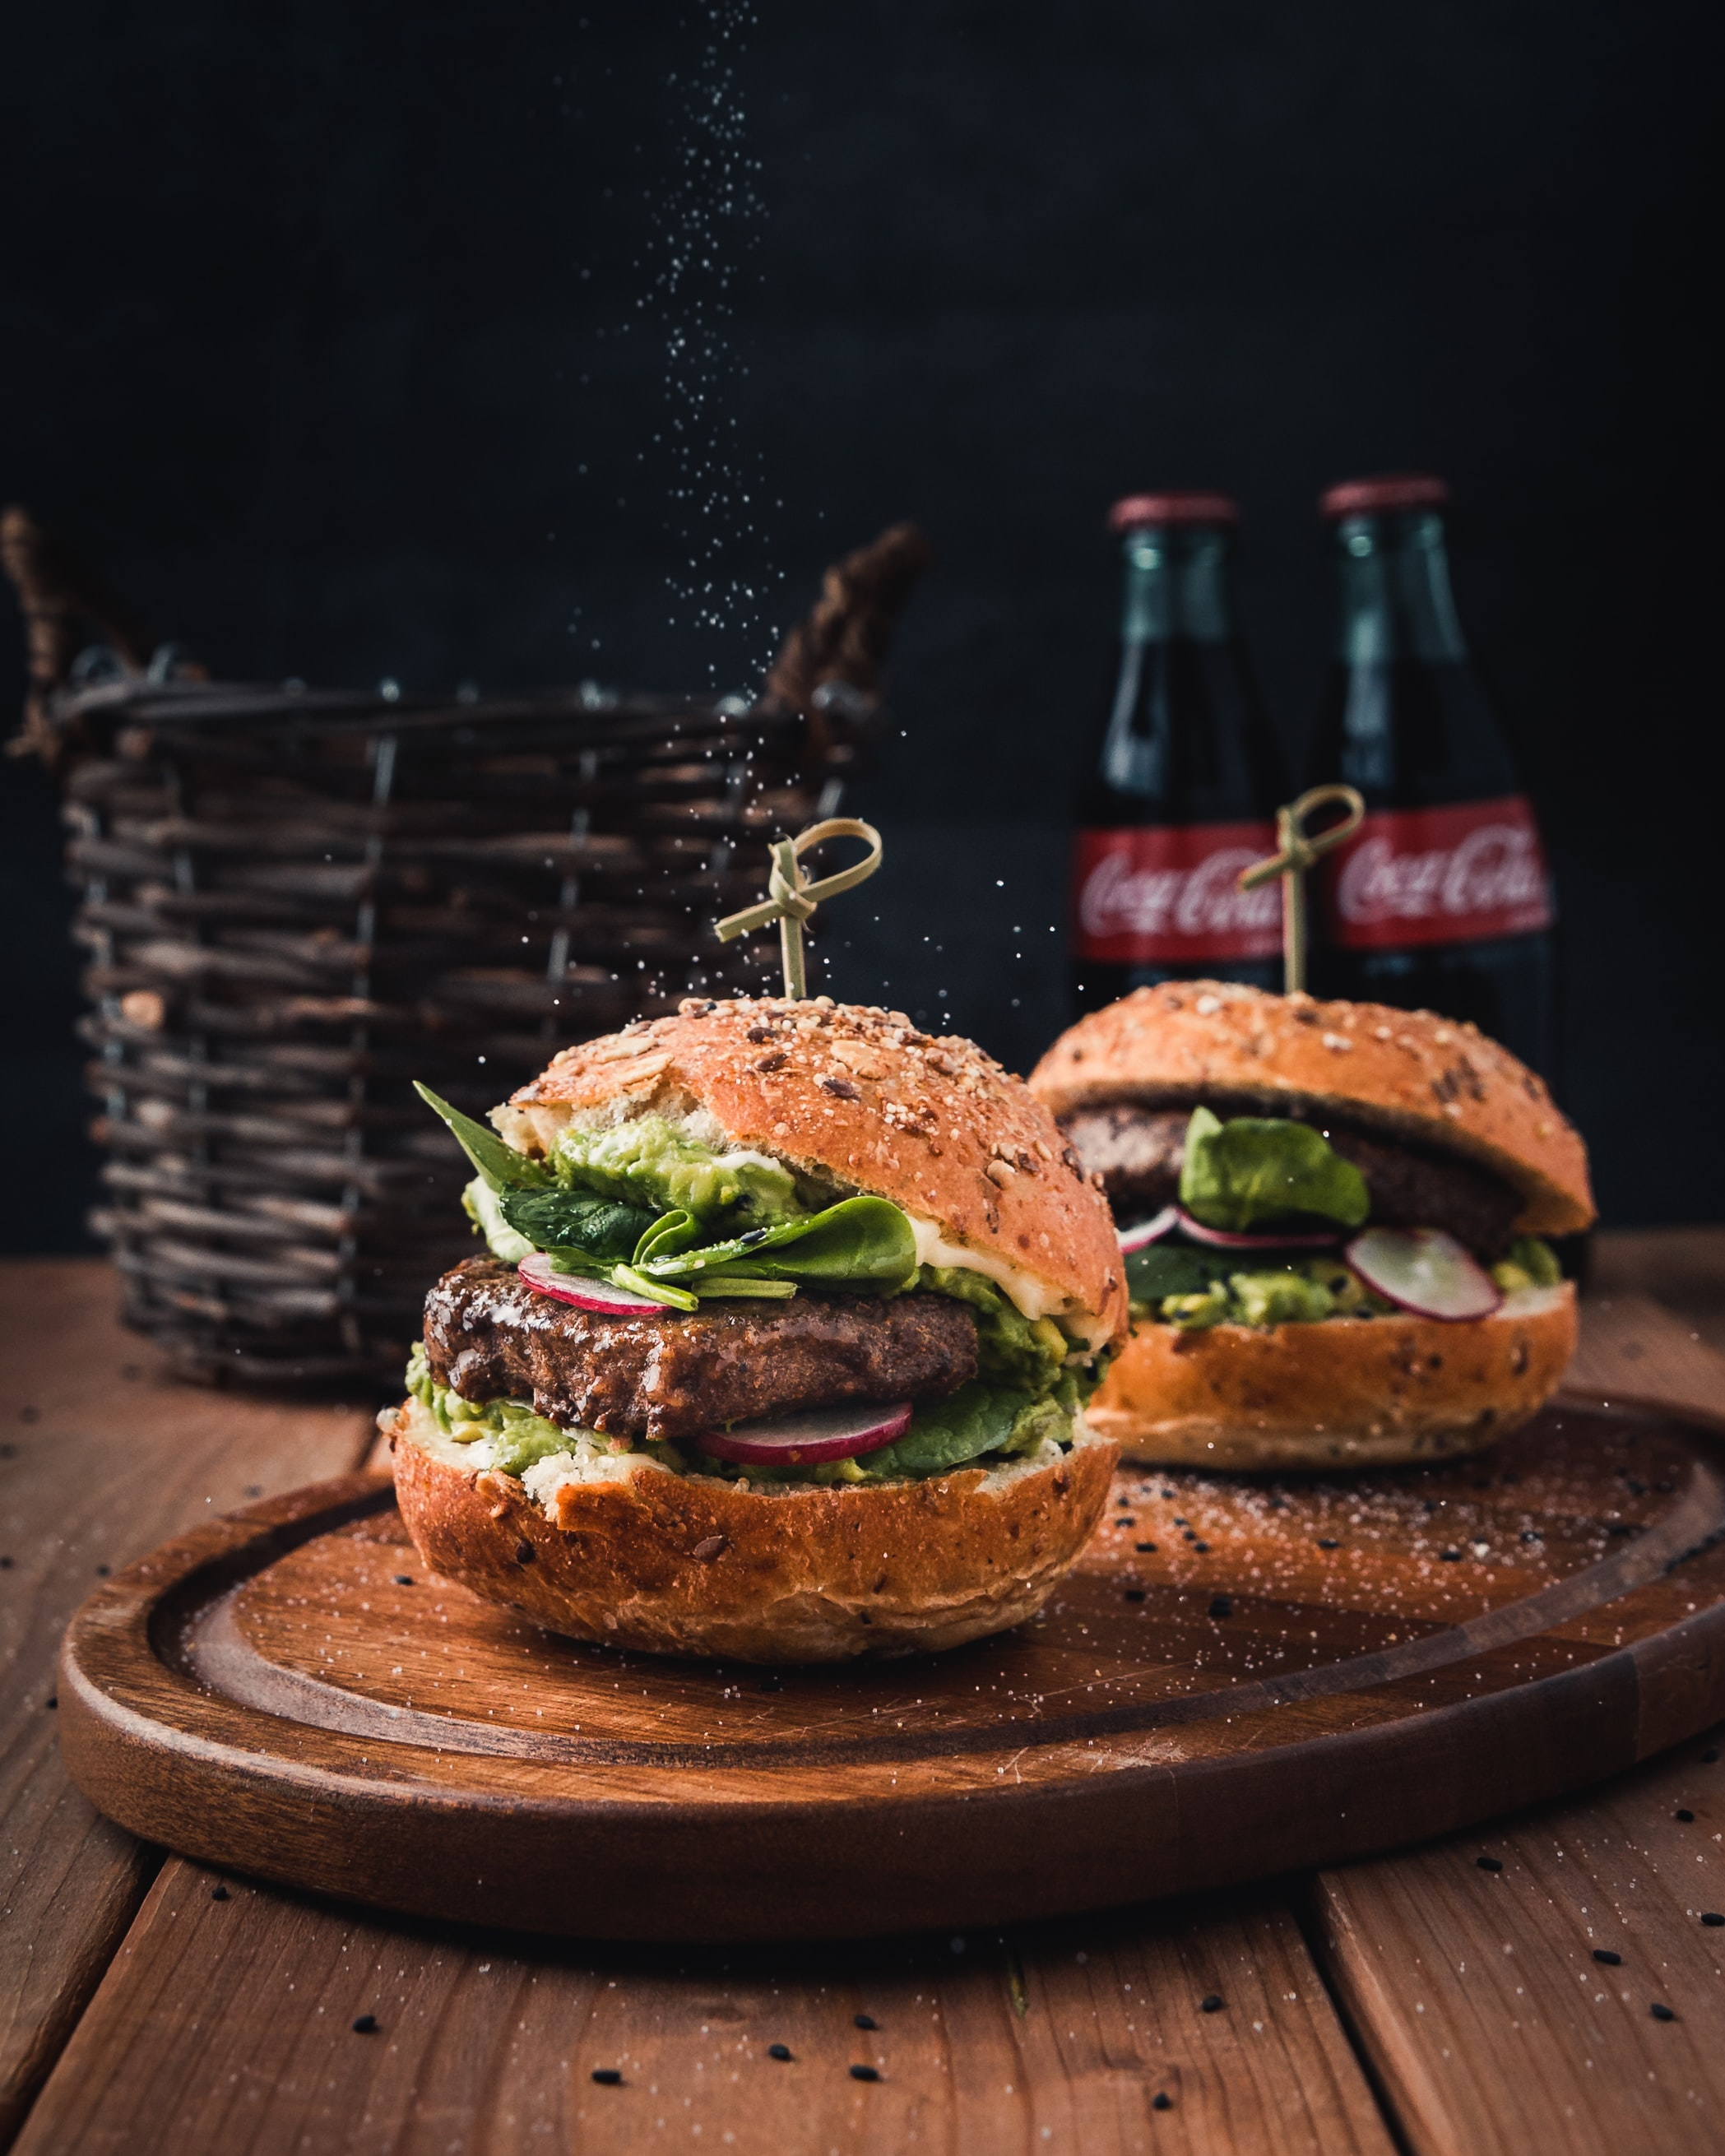 Book a food photoshoot for your brand with Beazy